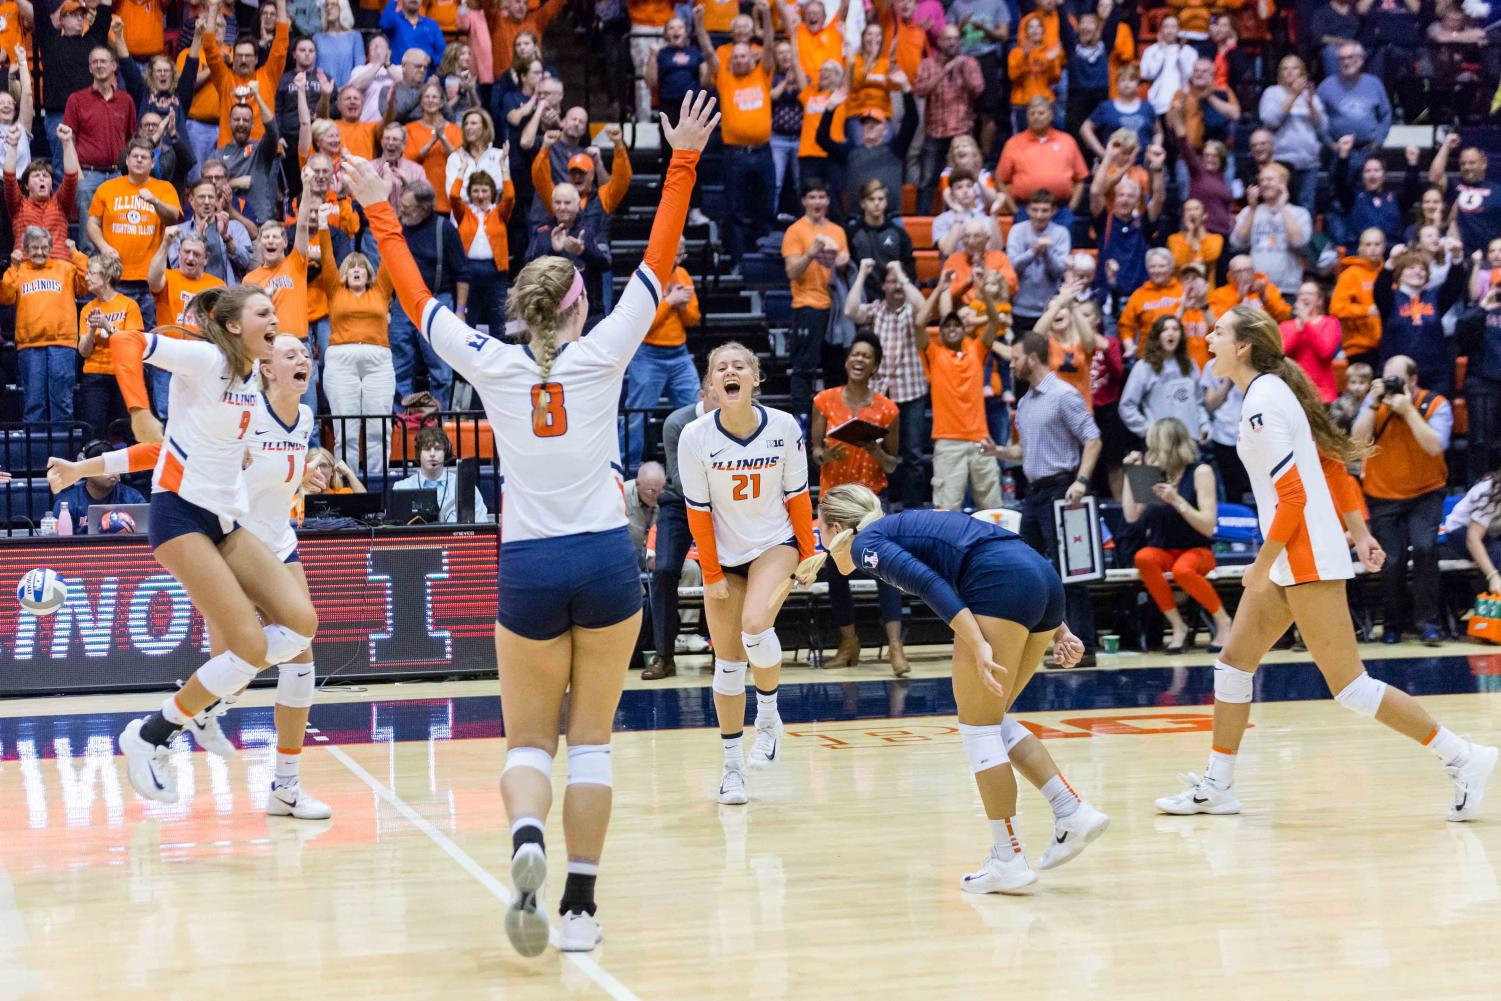 The Illini celebrate after scoring a point during the match against Michigan at Huff Hall on Saturday, Nov. 5, 2017. The Illini won 3-2.